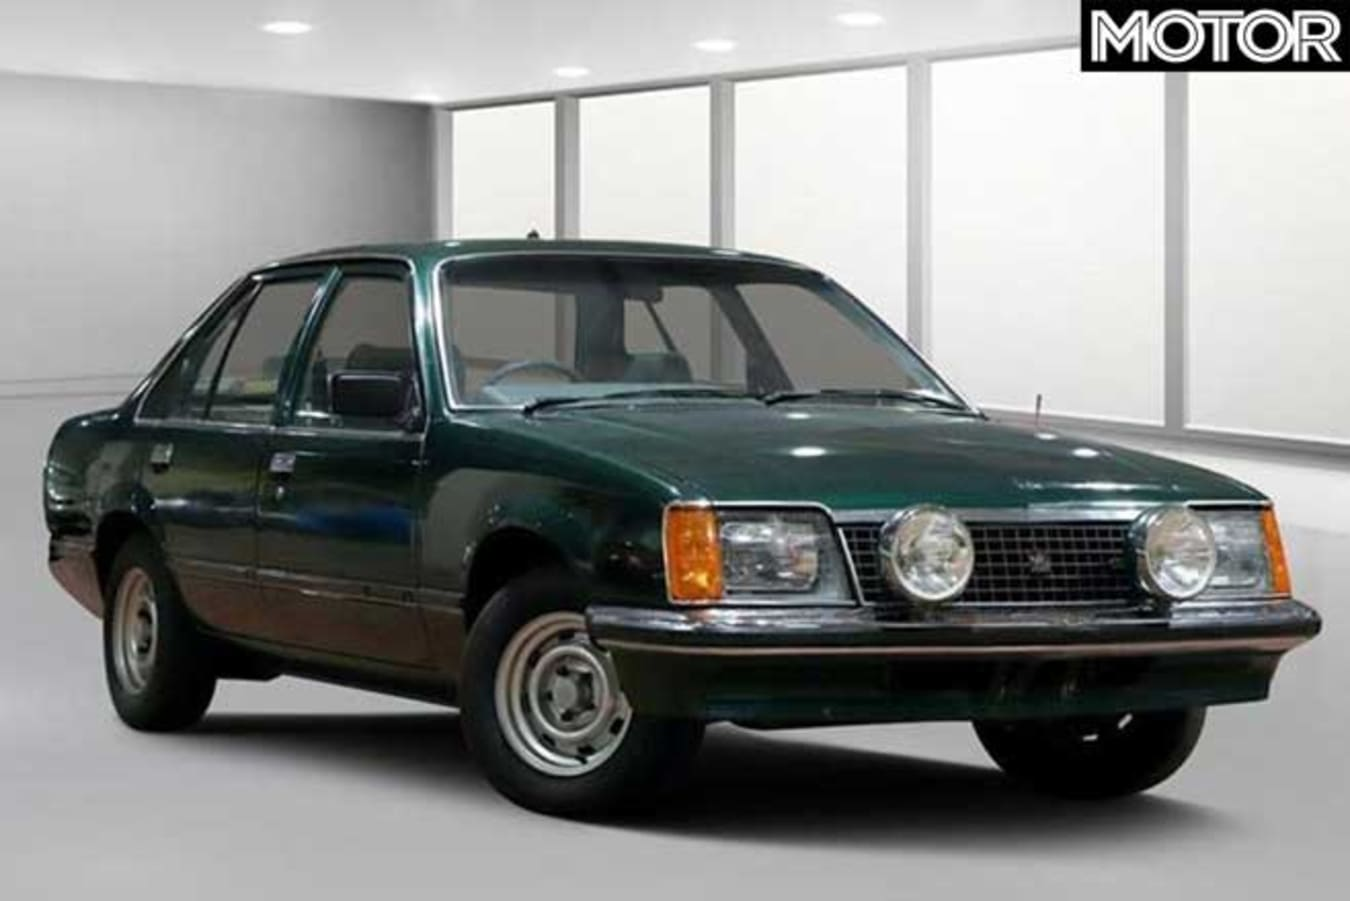 Holden VC Commodore Story Jpg